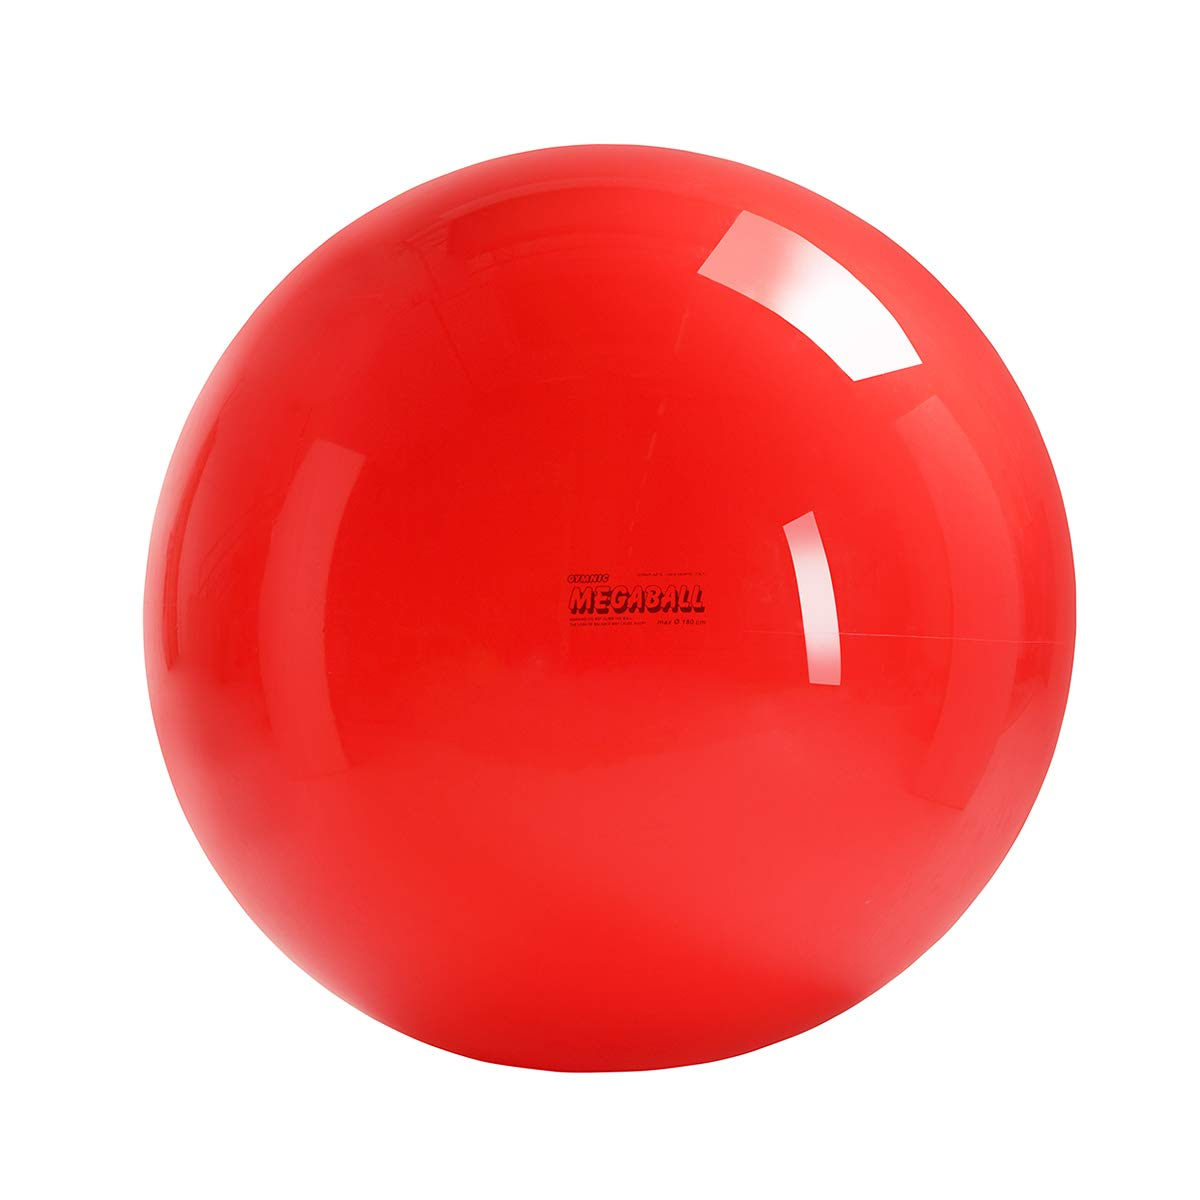 Gymnic Megaball: Group Activity Fitness Ball, Red (180 cm)